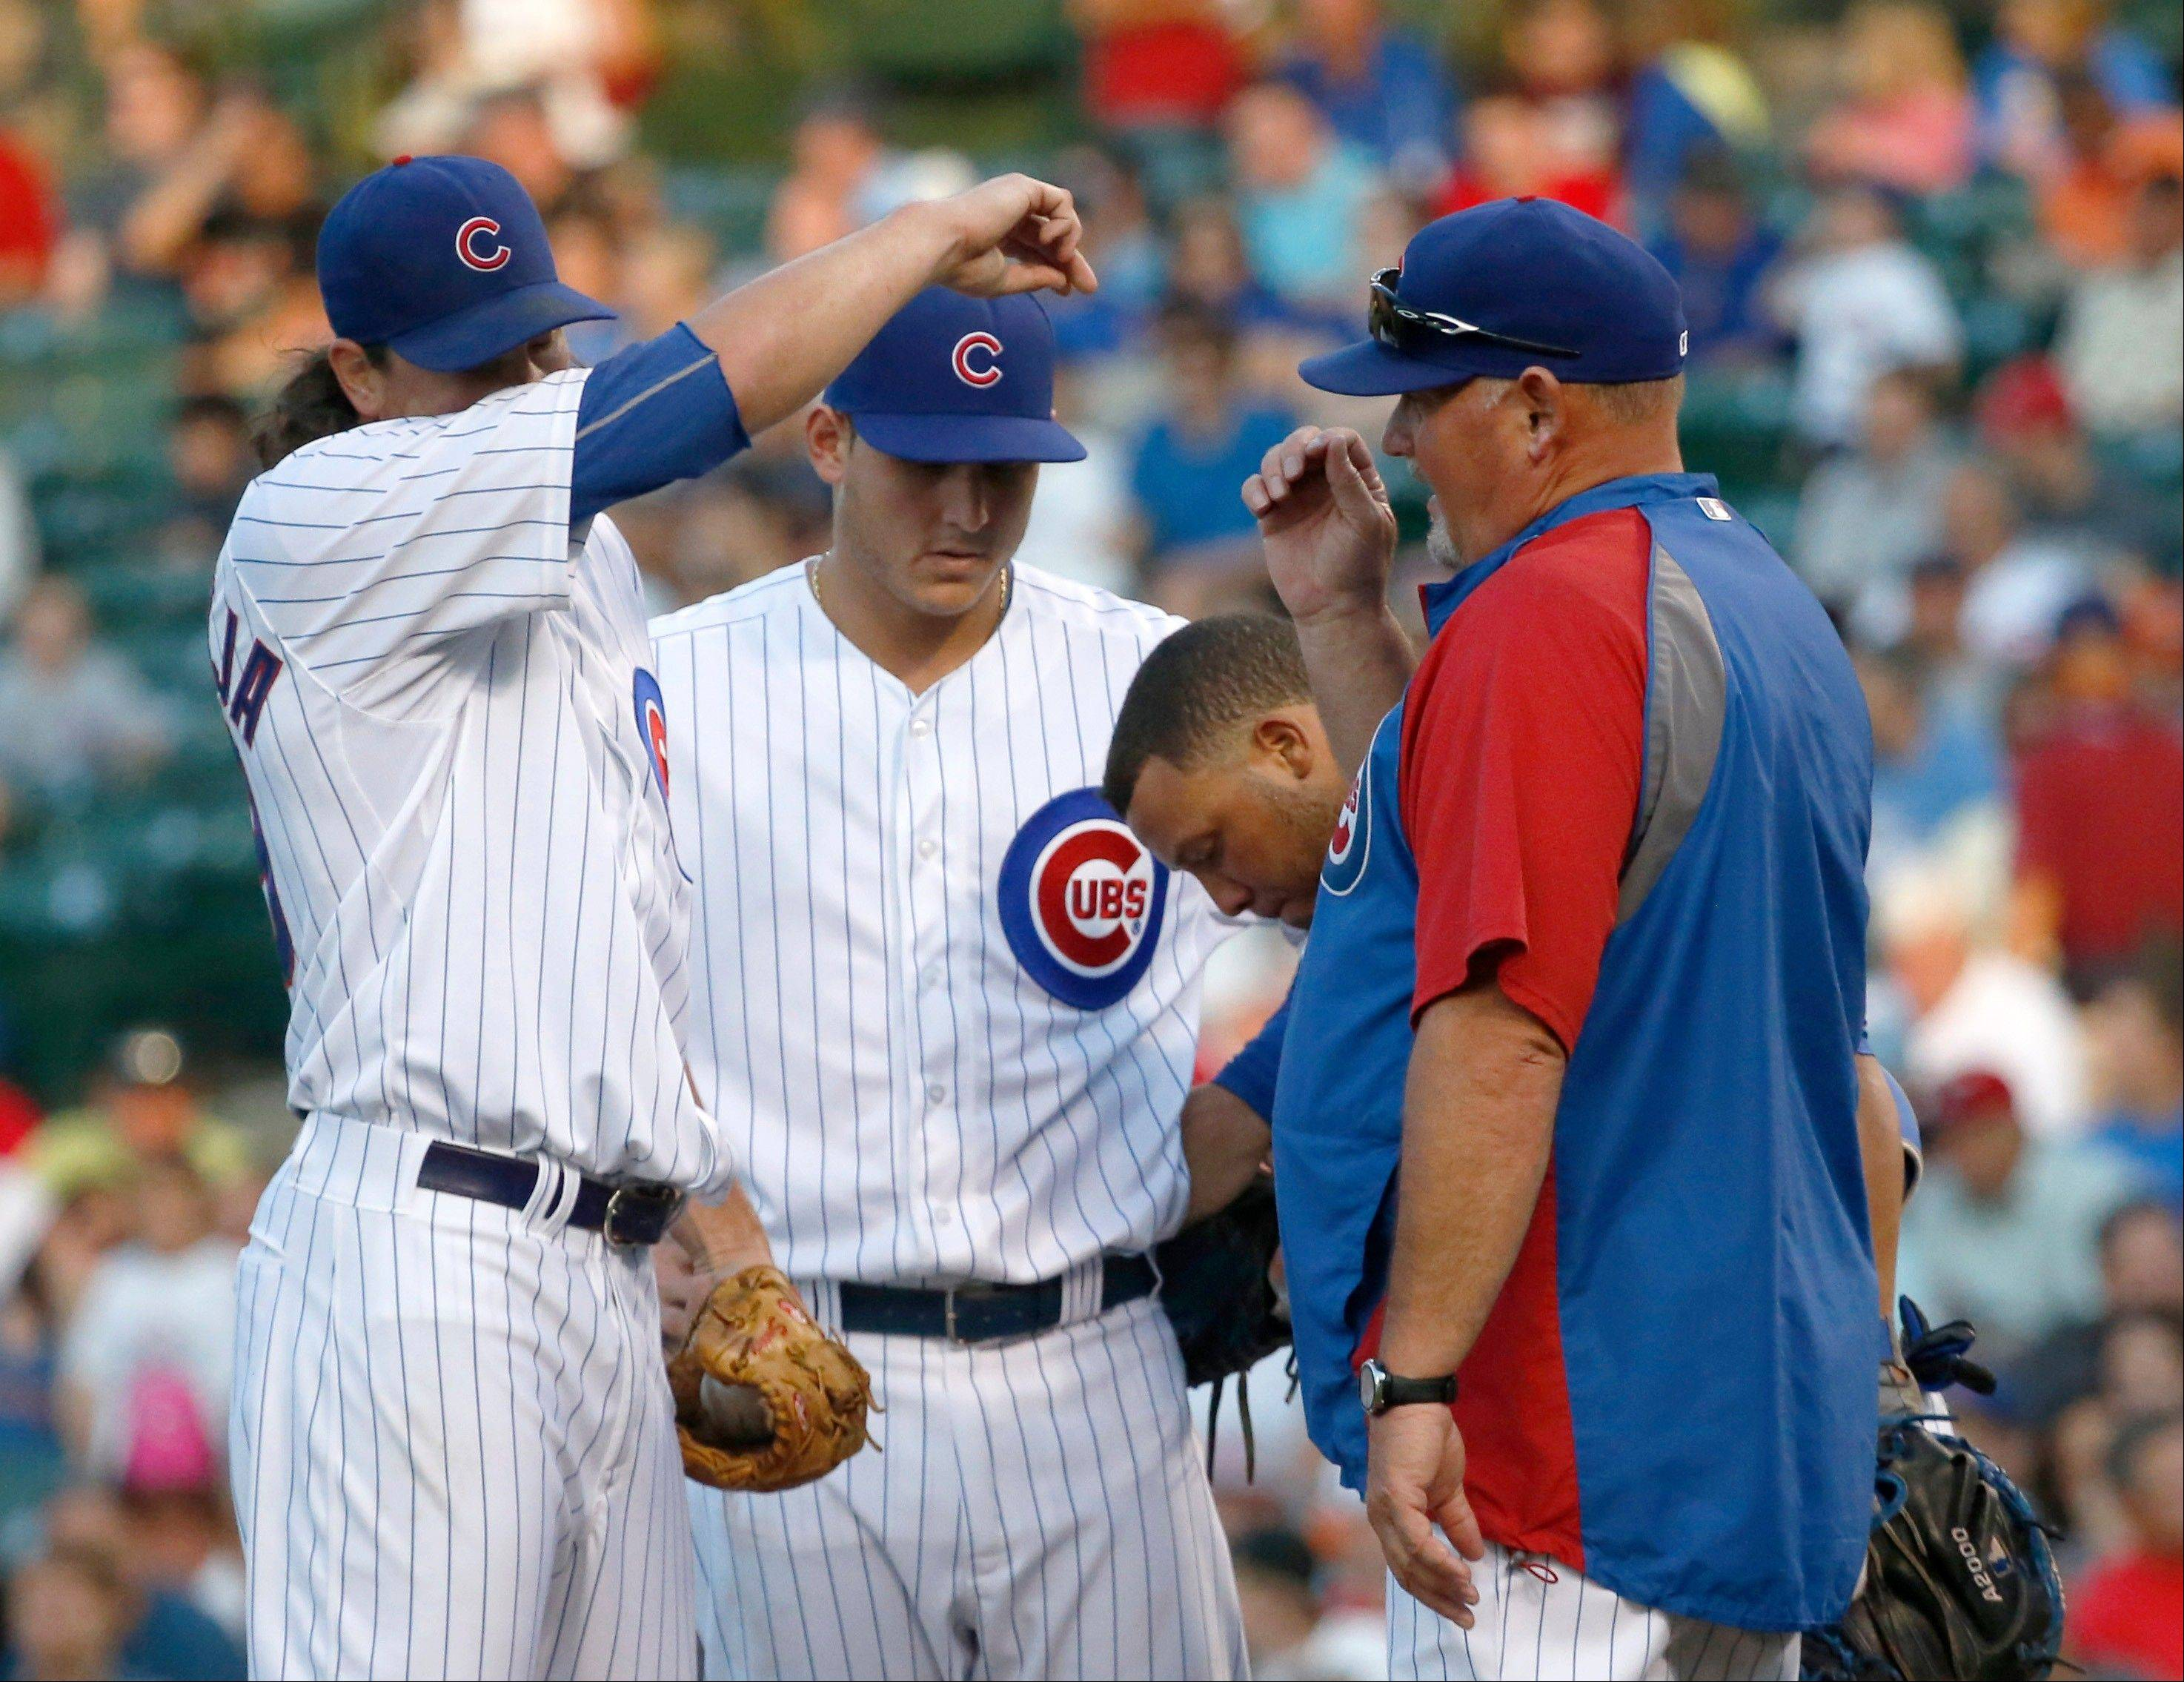 Cubs don't expect repeat of last year's pitching problem